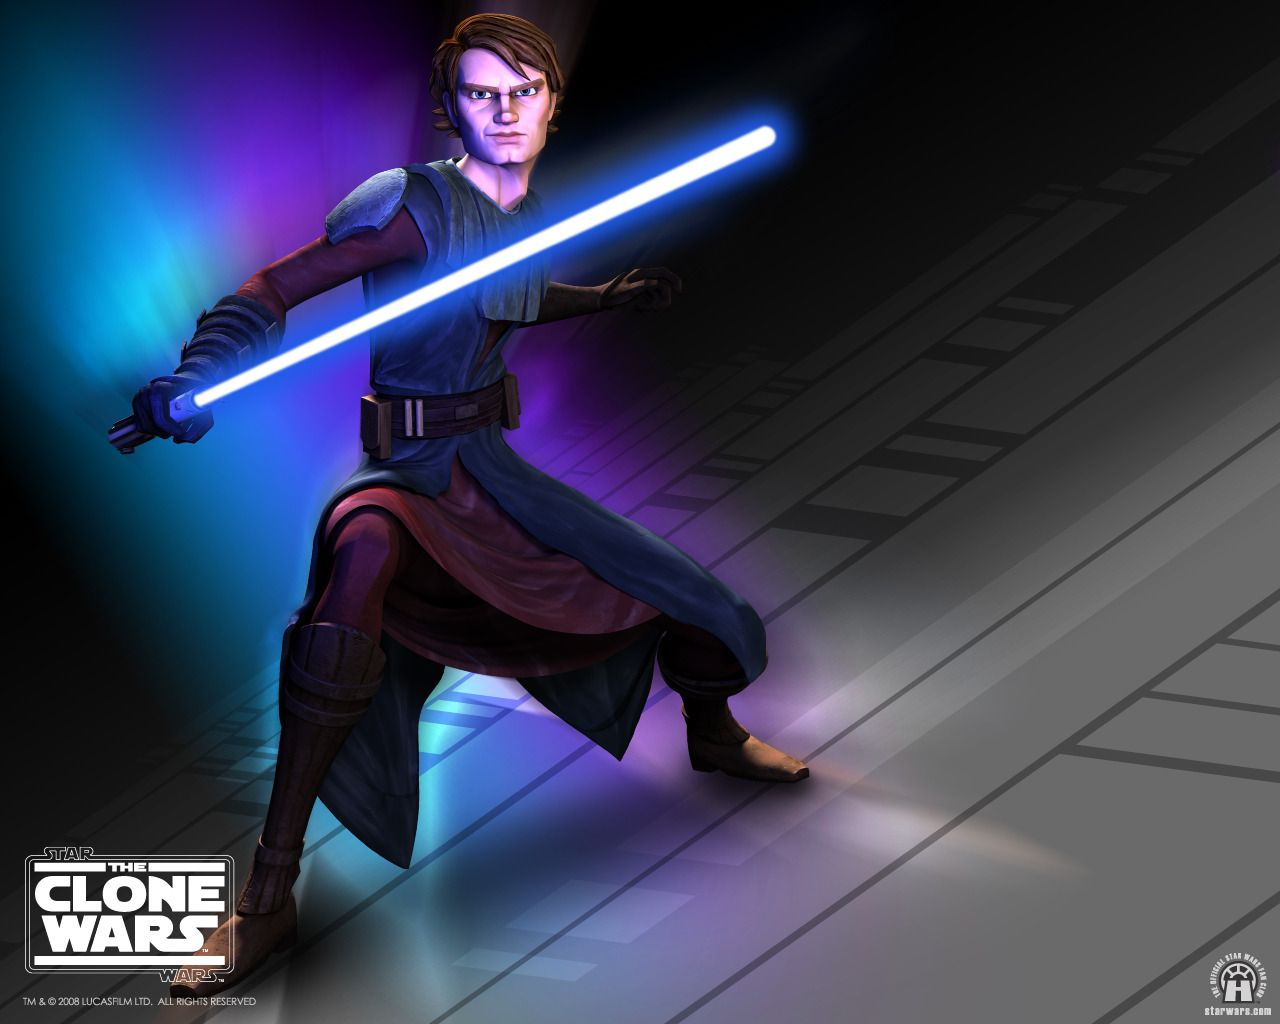 Star Wars The Clone Wars Bolum Rehberi Tanitim Wallpaper Kadro Star Wars Clone Wars Clone Wars Star Wars Wallpaper